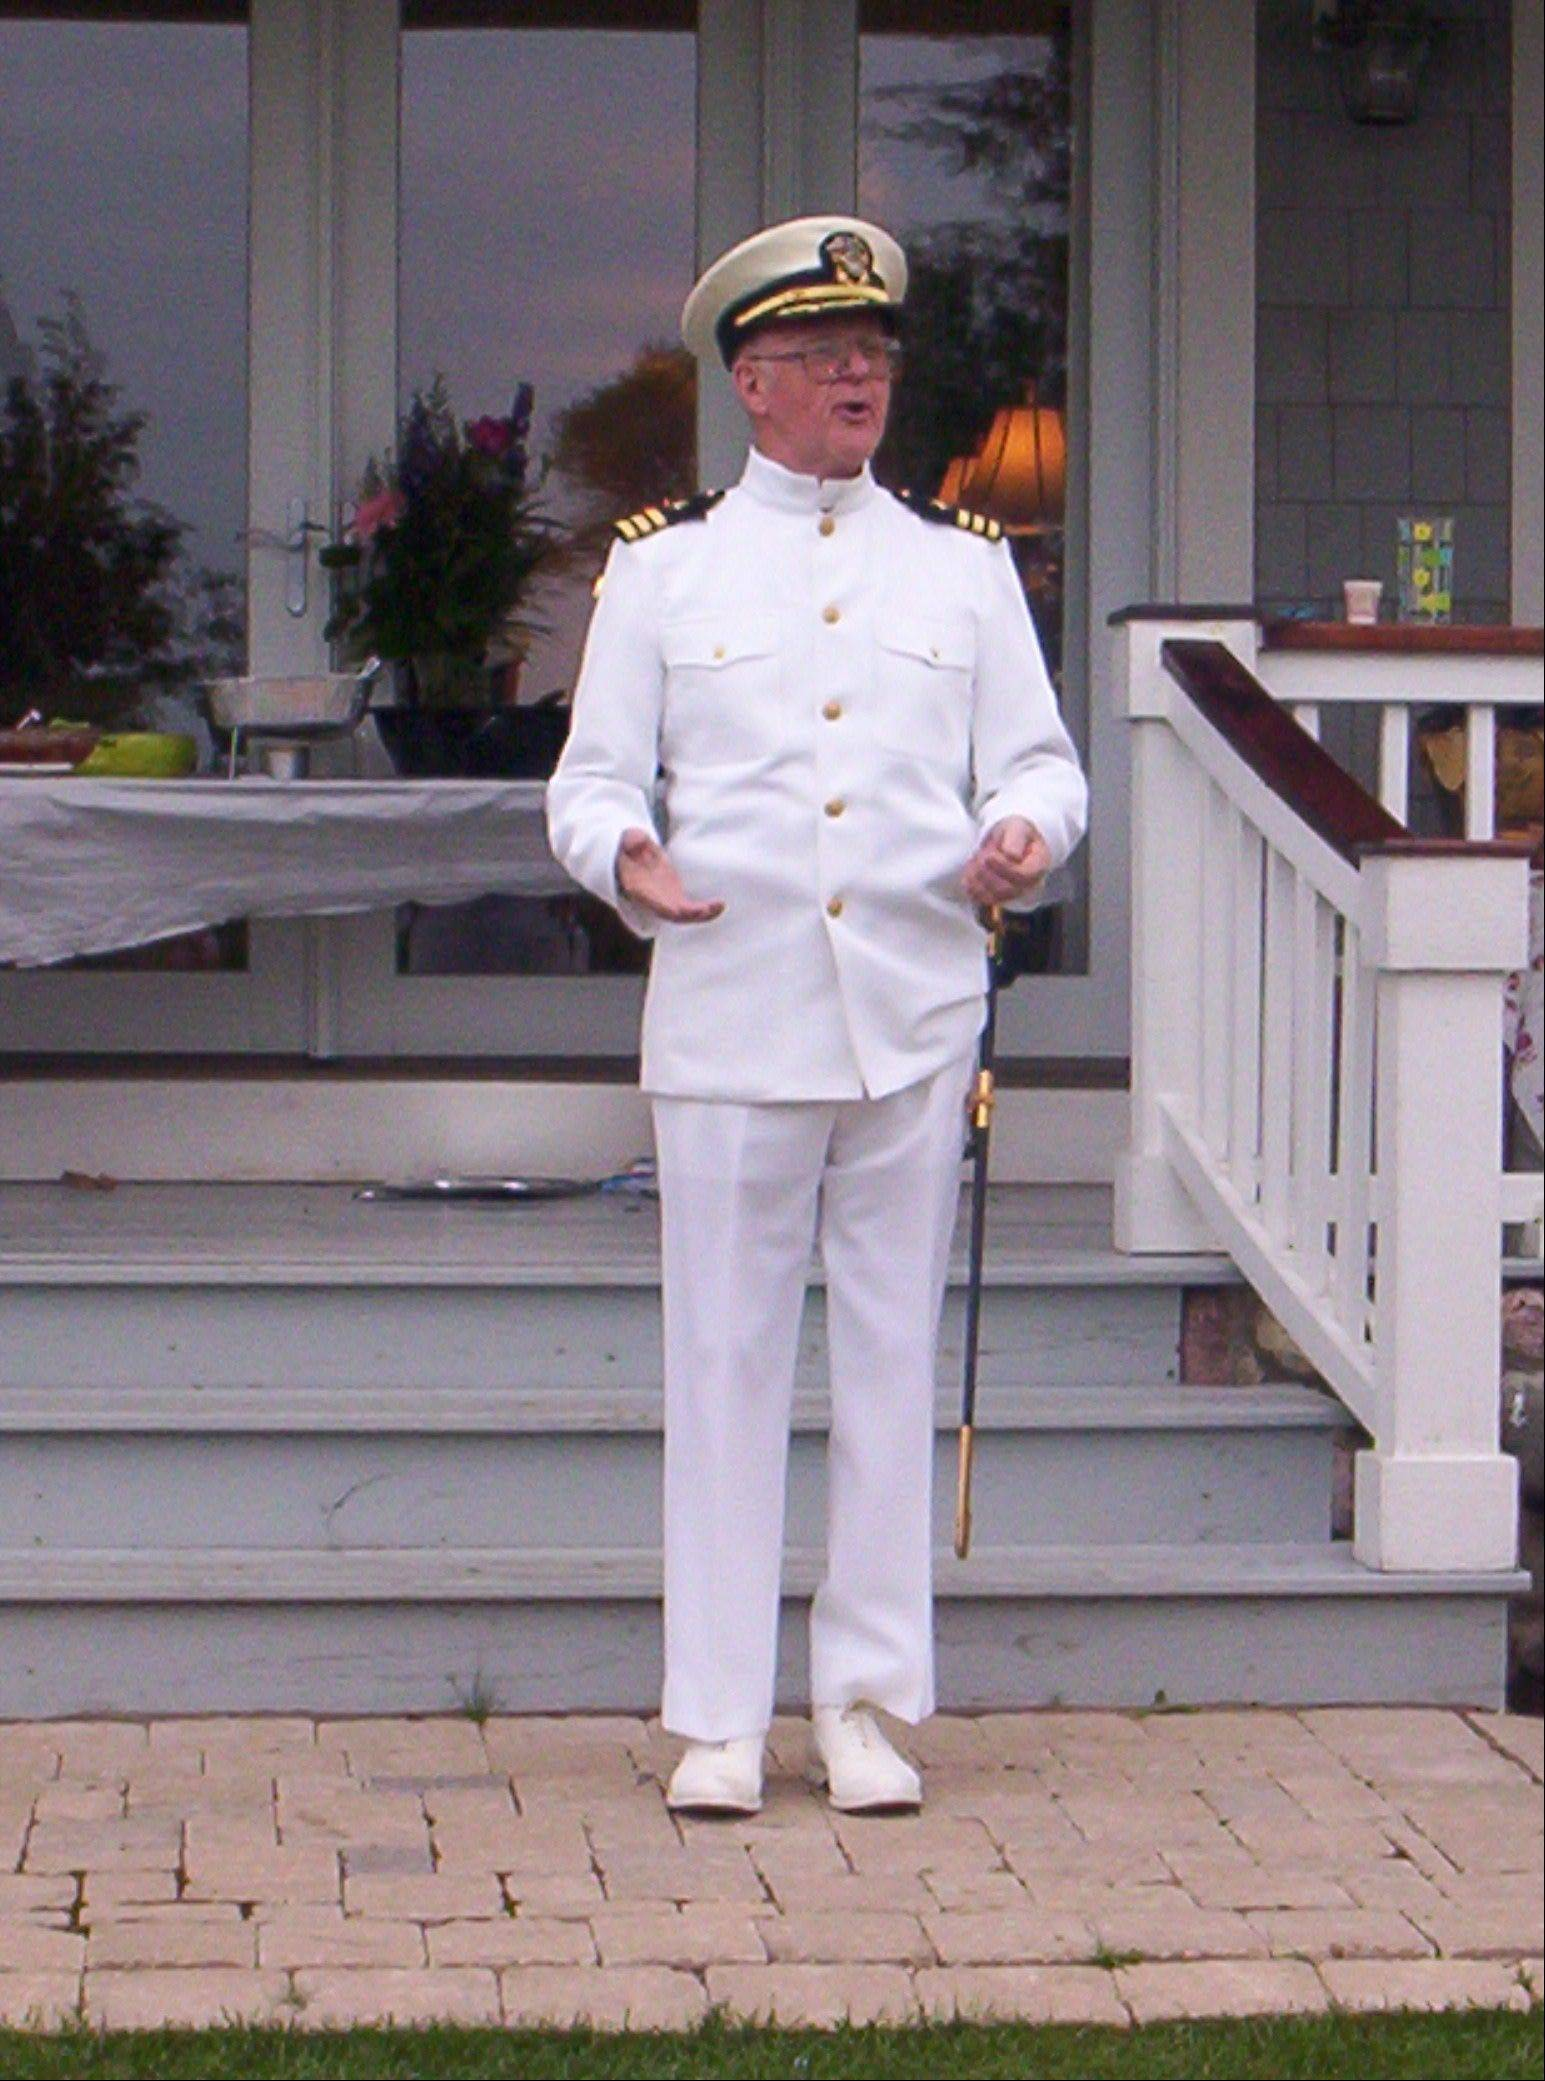 Still able to fit in his formal dress white uniform, retired Navy Cmdr. Robert Griffith of Arlington Heights attends a military reunion in 2006.